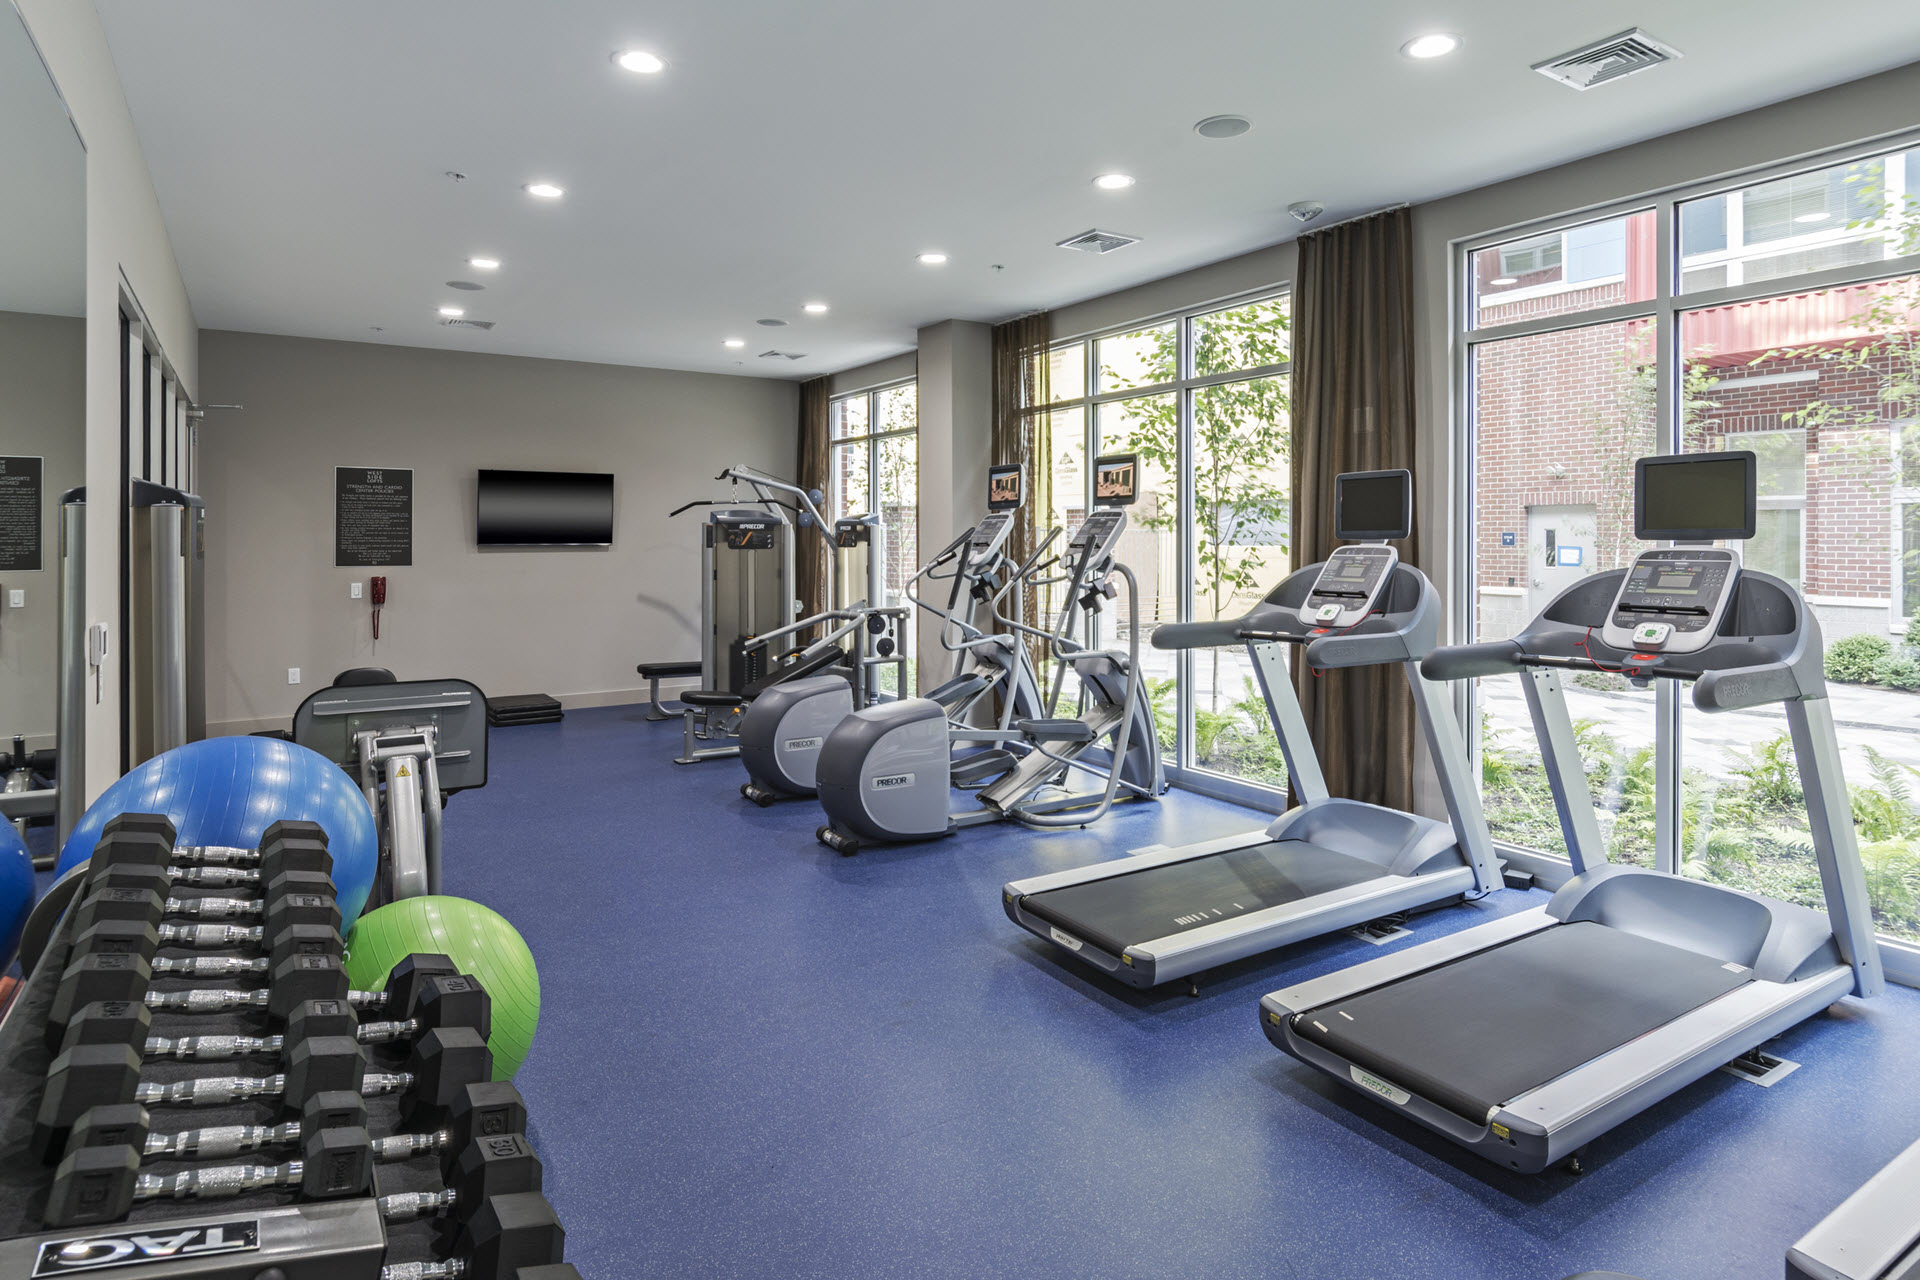 State-of-the-Art Fitness Center at West Side Lofts, Red Bank NJ 07701